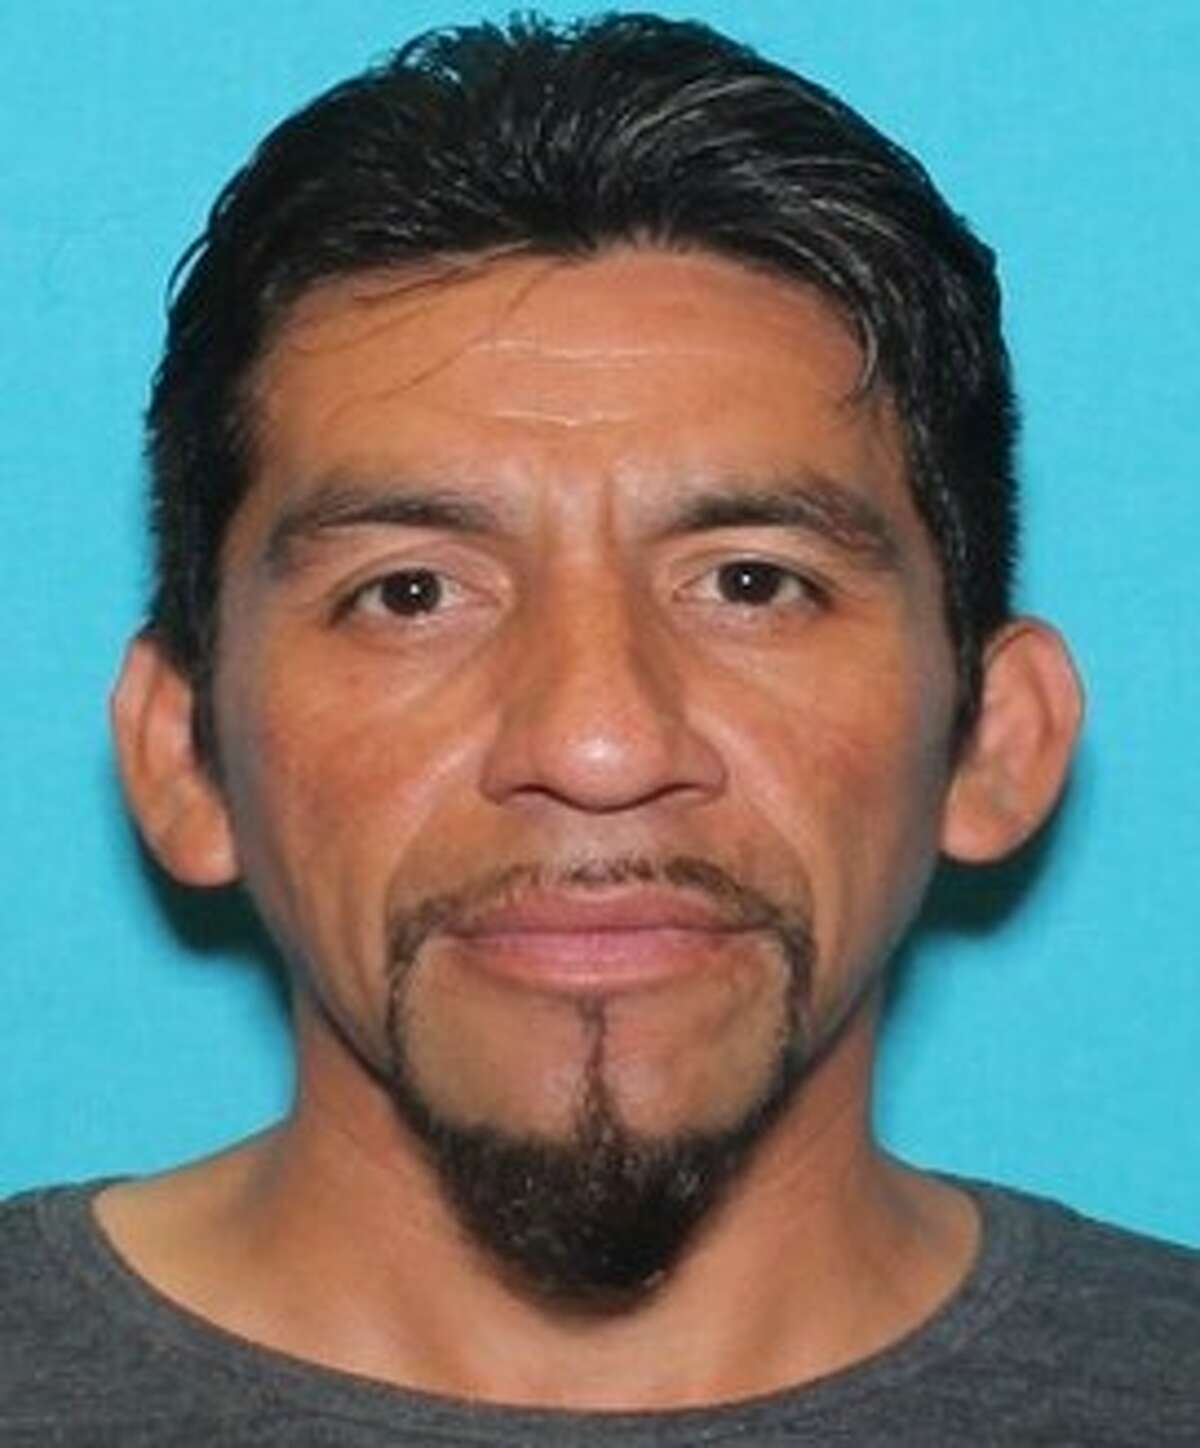 """Joe """"Cano"""" Rodriguez, 45, has been charged with the murder of his nephew Ruben Solis, according to Bexar County records."""